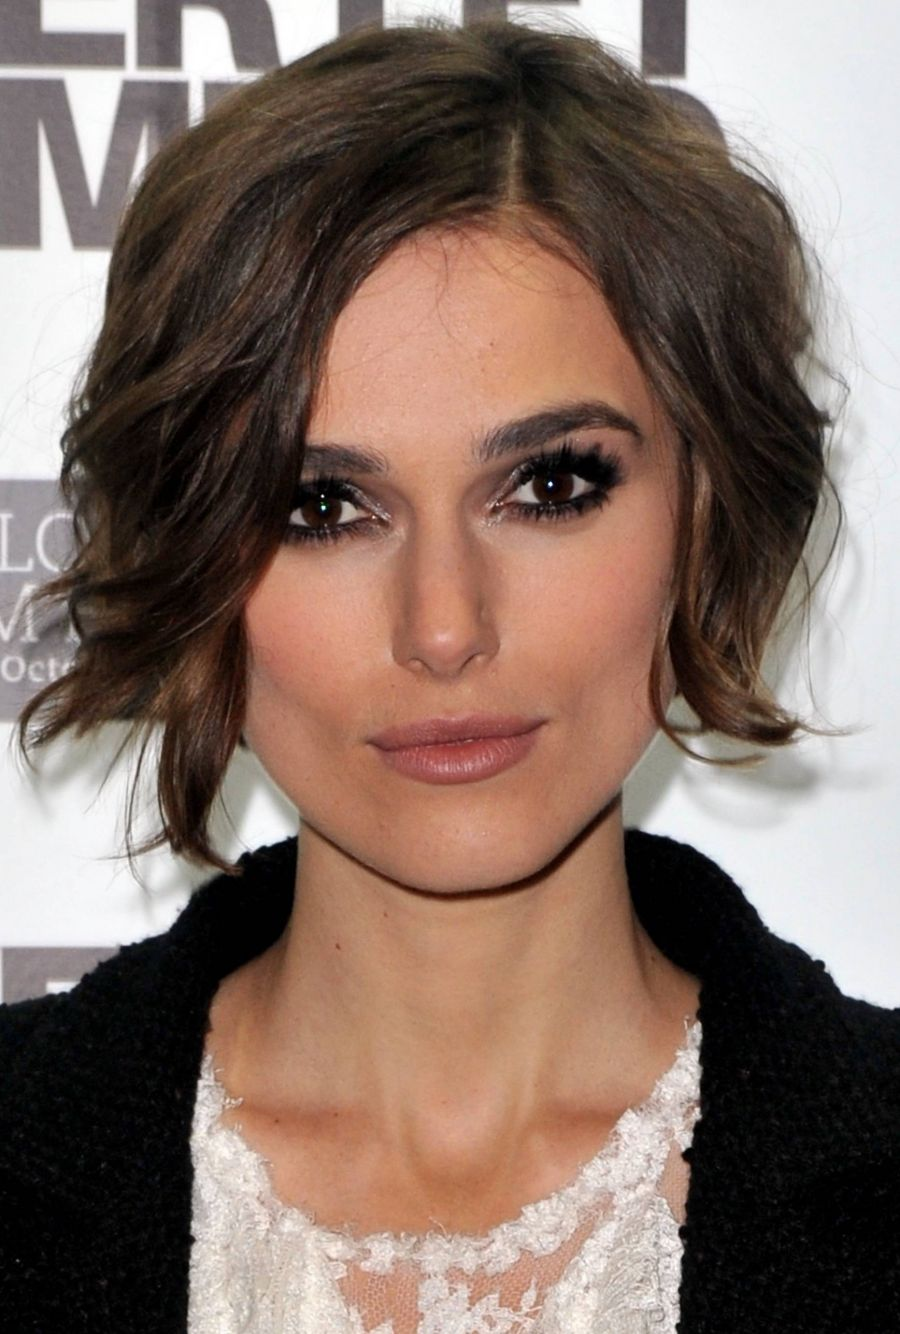 Pictures of Quick Natural Hairstyles For Short Hair